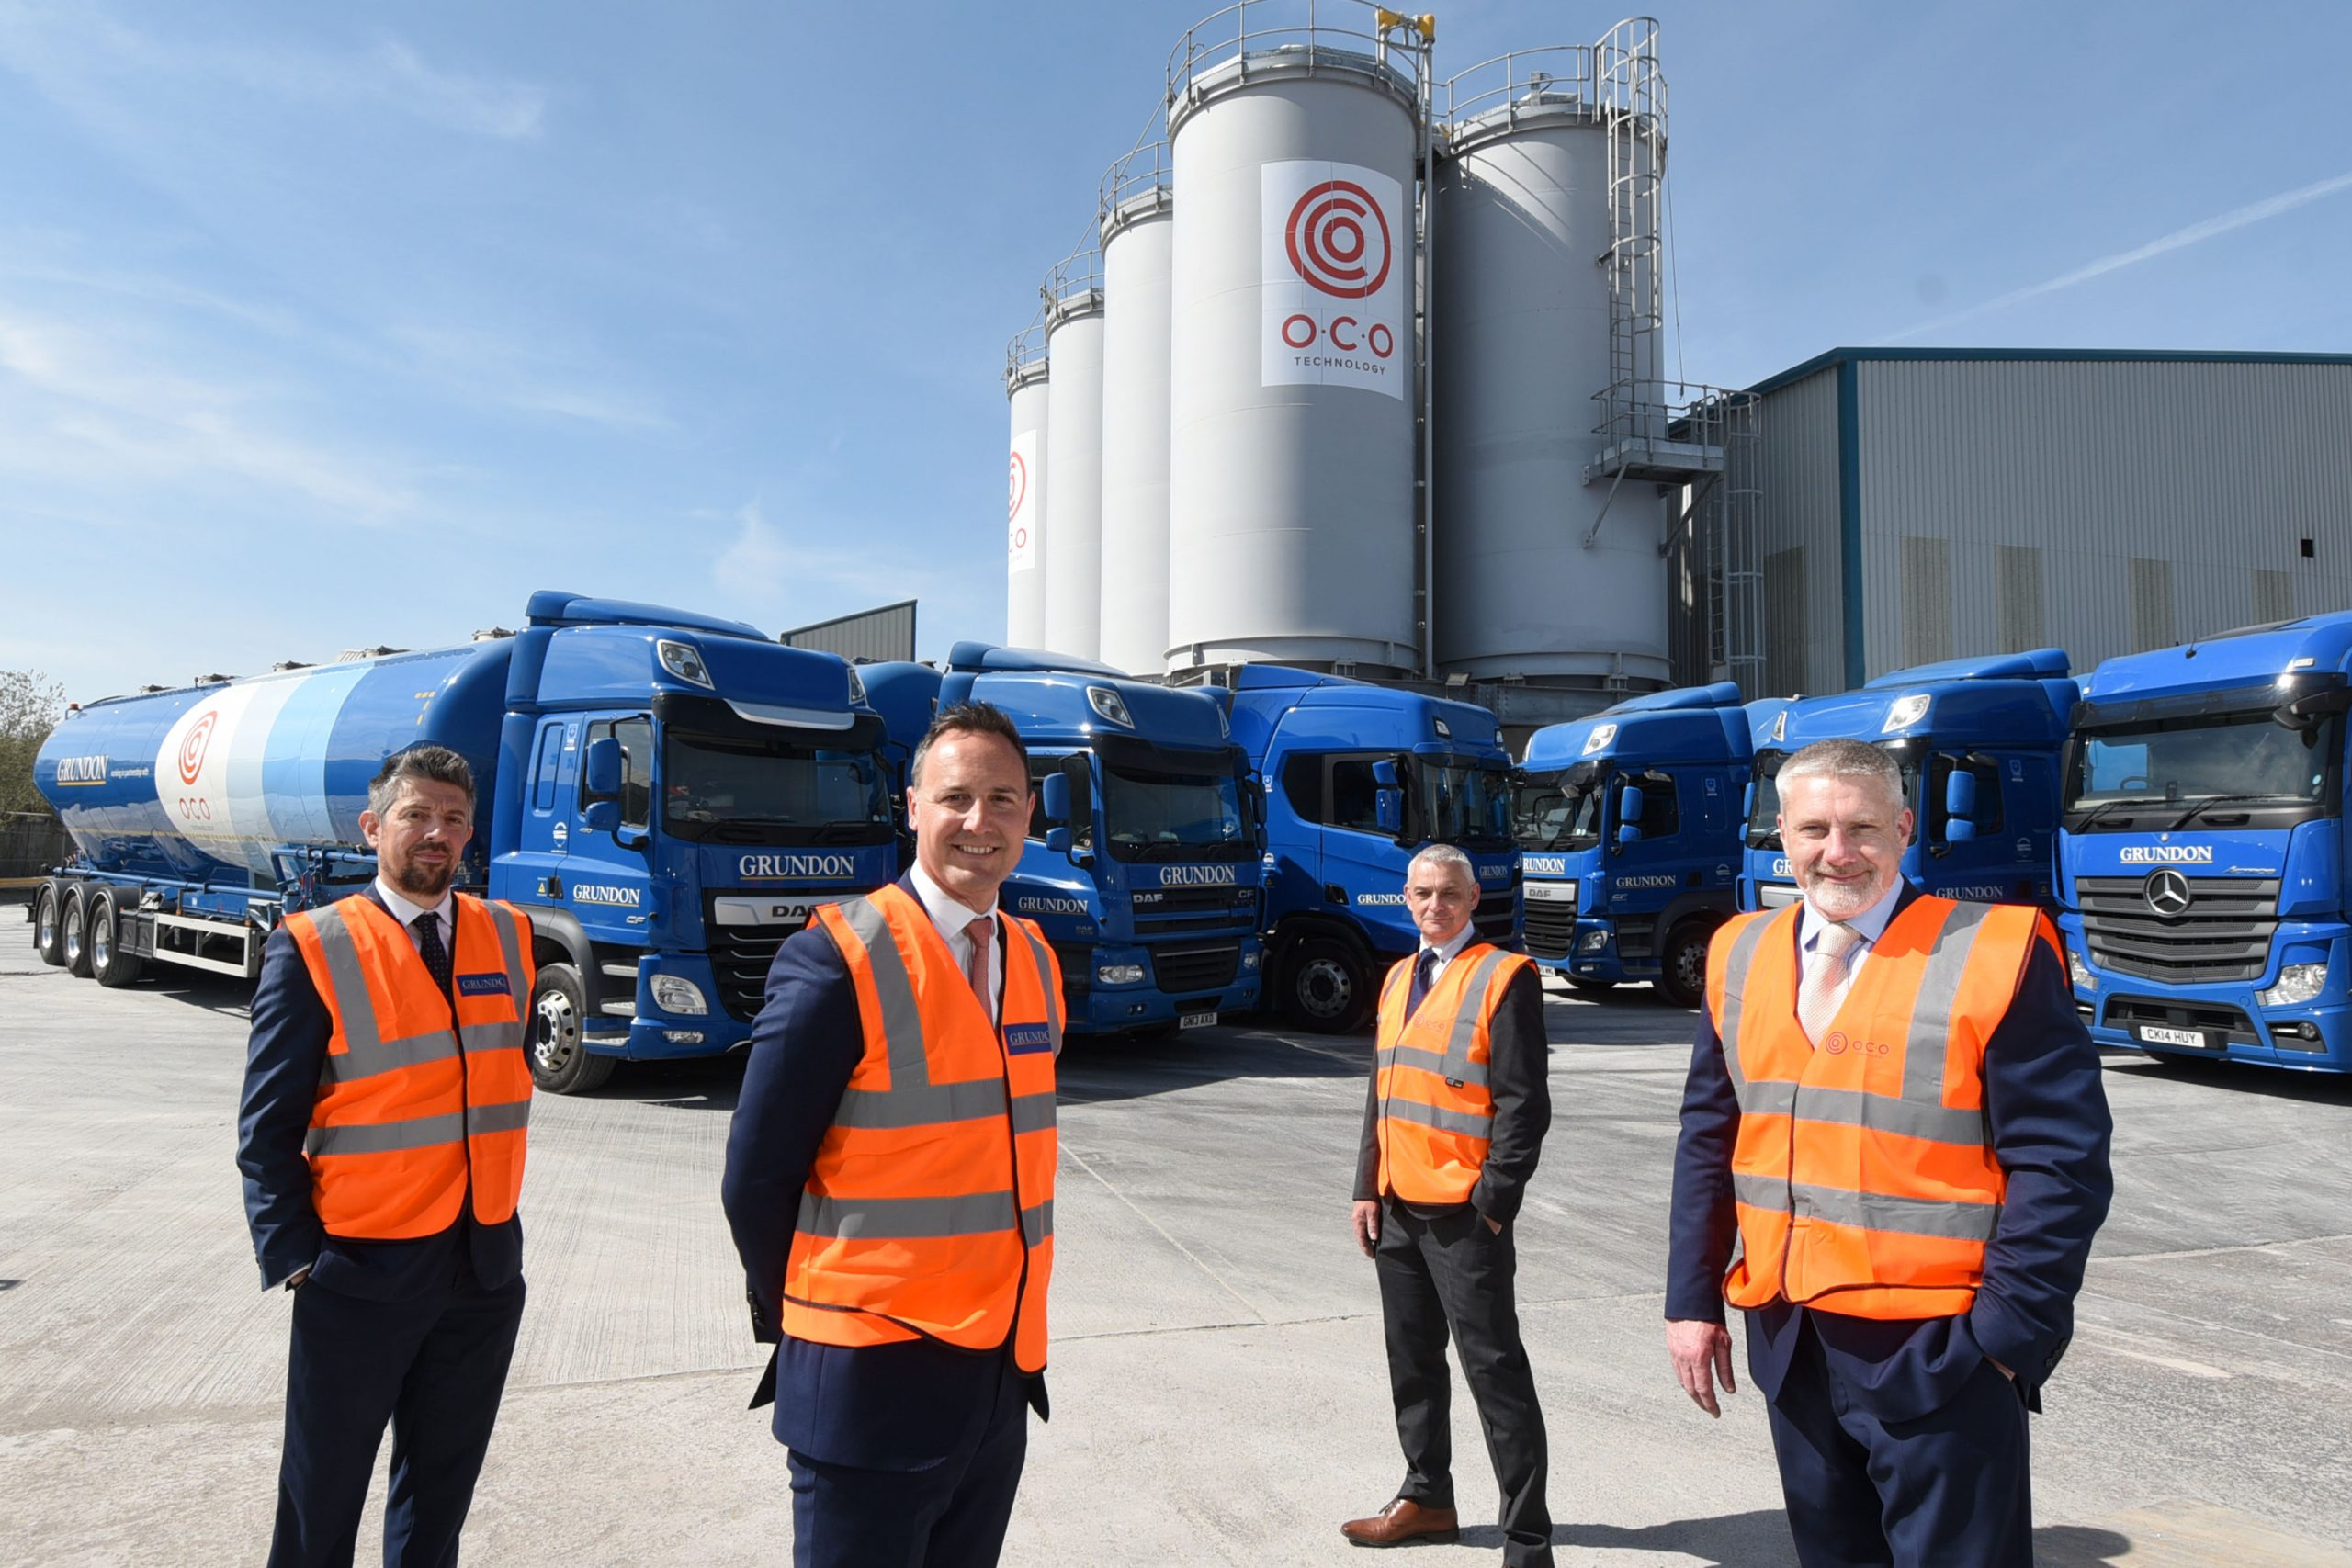 Pictured at O.C.O's Avonmouth facility with the tanker fleet in the background, are (from left)  Richard Van-Den-Heule, Grundon's Depot Operations Manager at Bishop's Cleeve; Bradley Smith, Grundon's Sales & Marketing Director; Paul Barber, General Manager – Operations at O.C.O, and Steve Greig, O.C.O's Managing Director.